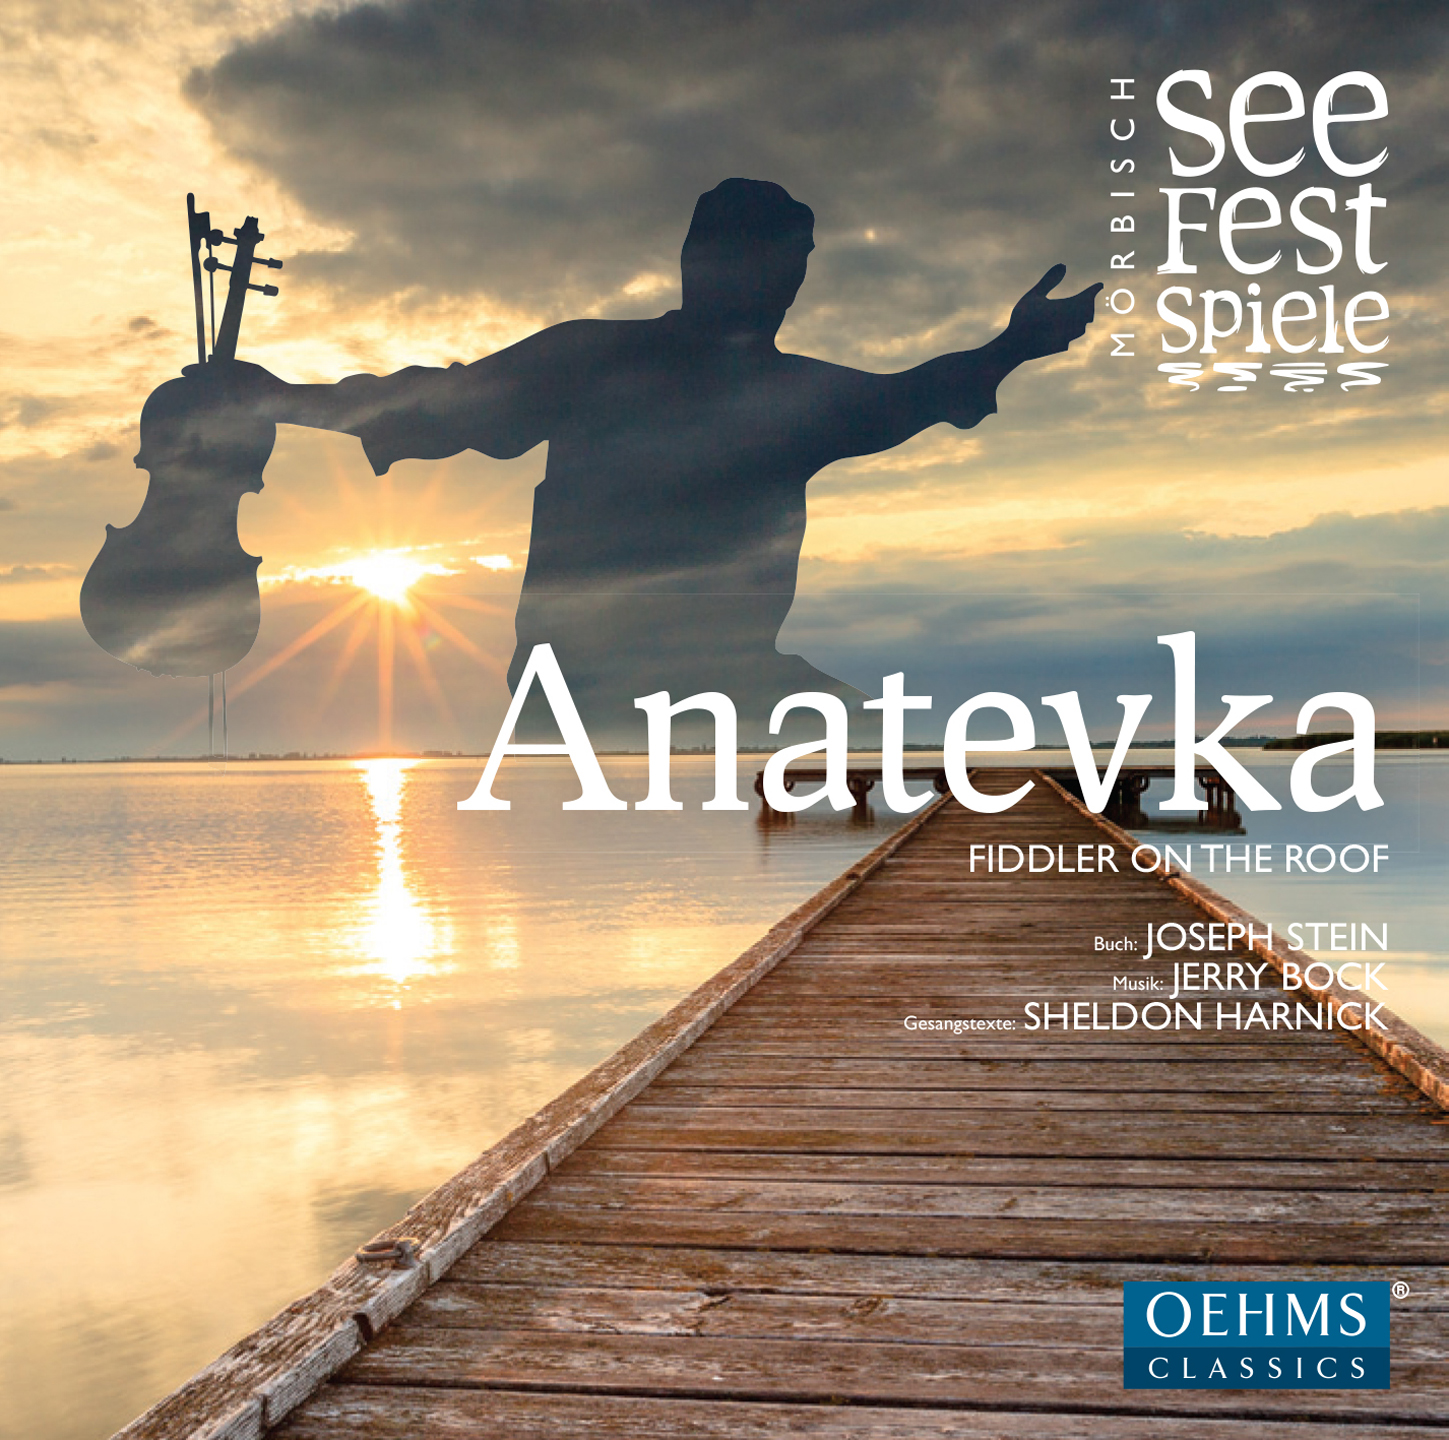 Anatevka (Fiddler on the Roof) [Sung in German]